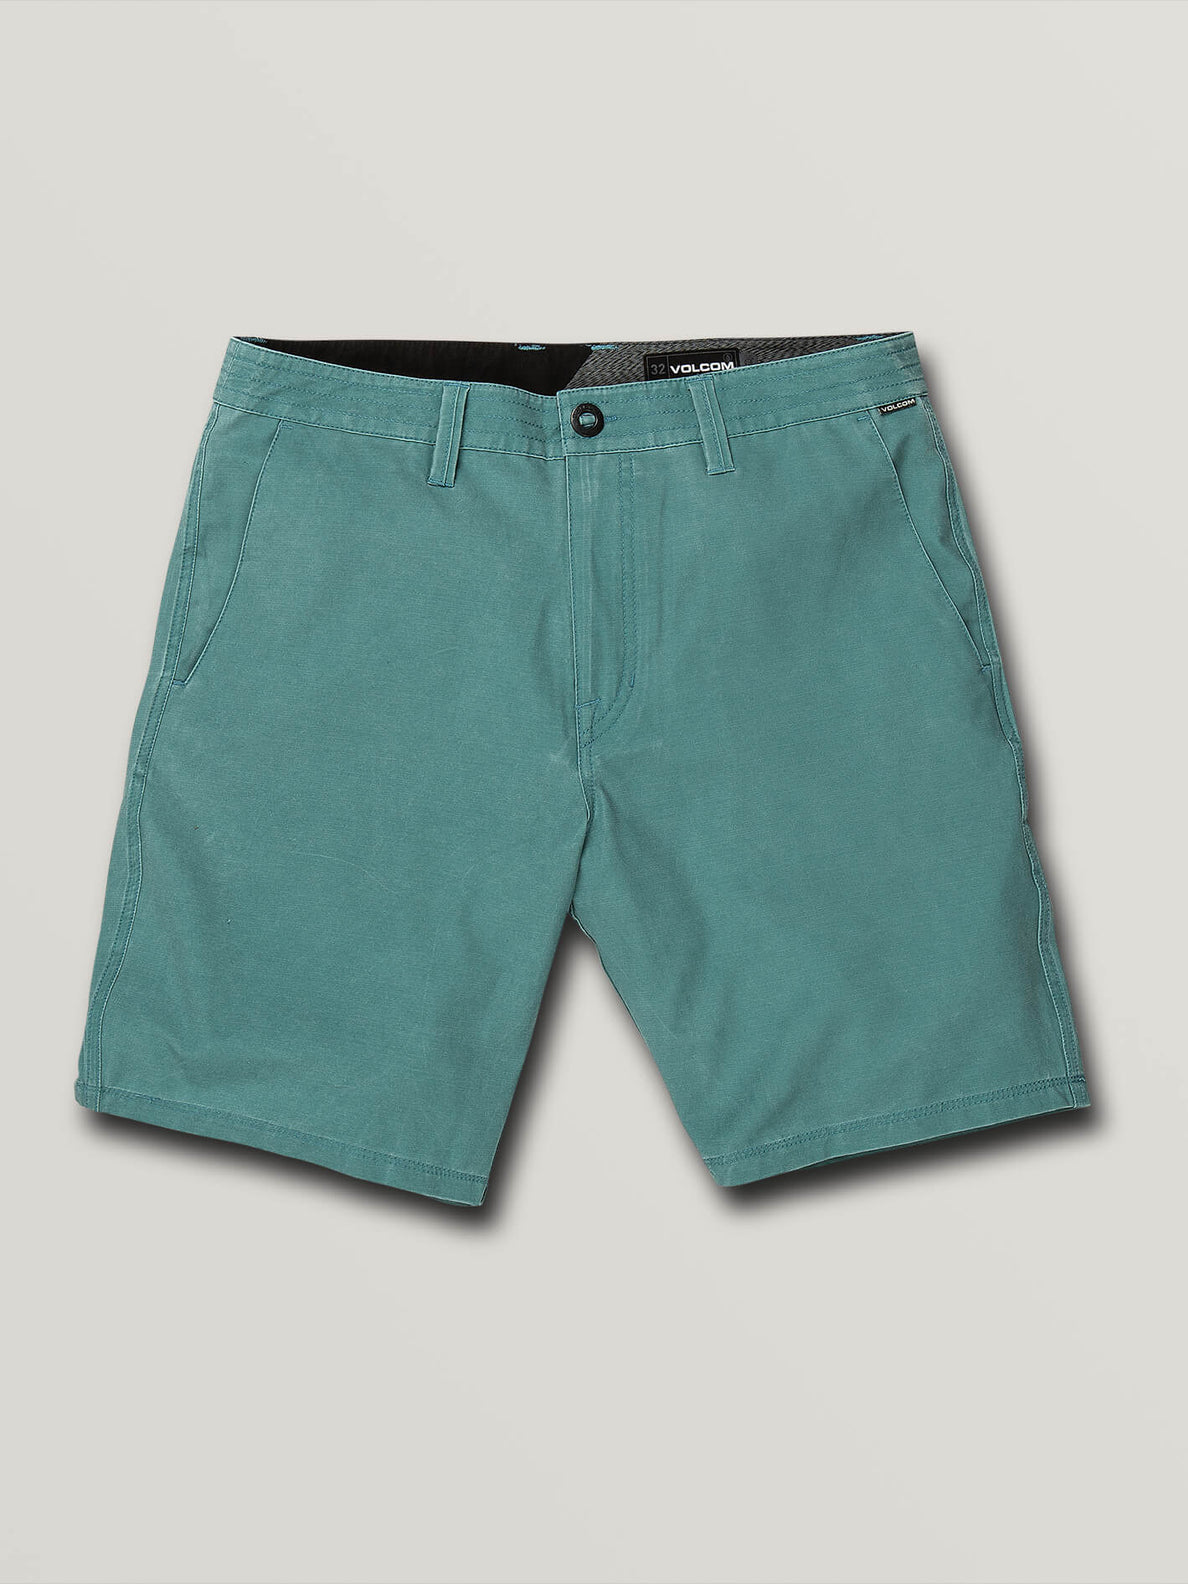 Surf N' Turf Faded Hybrid Shorts - Agave (A3211903_AGV) [F]